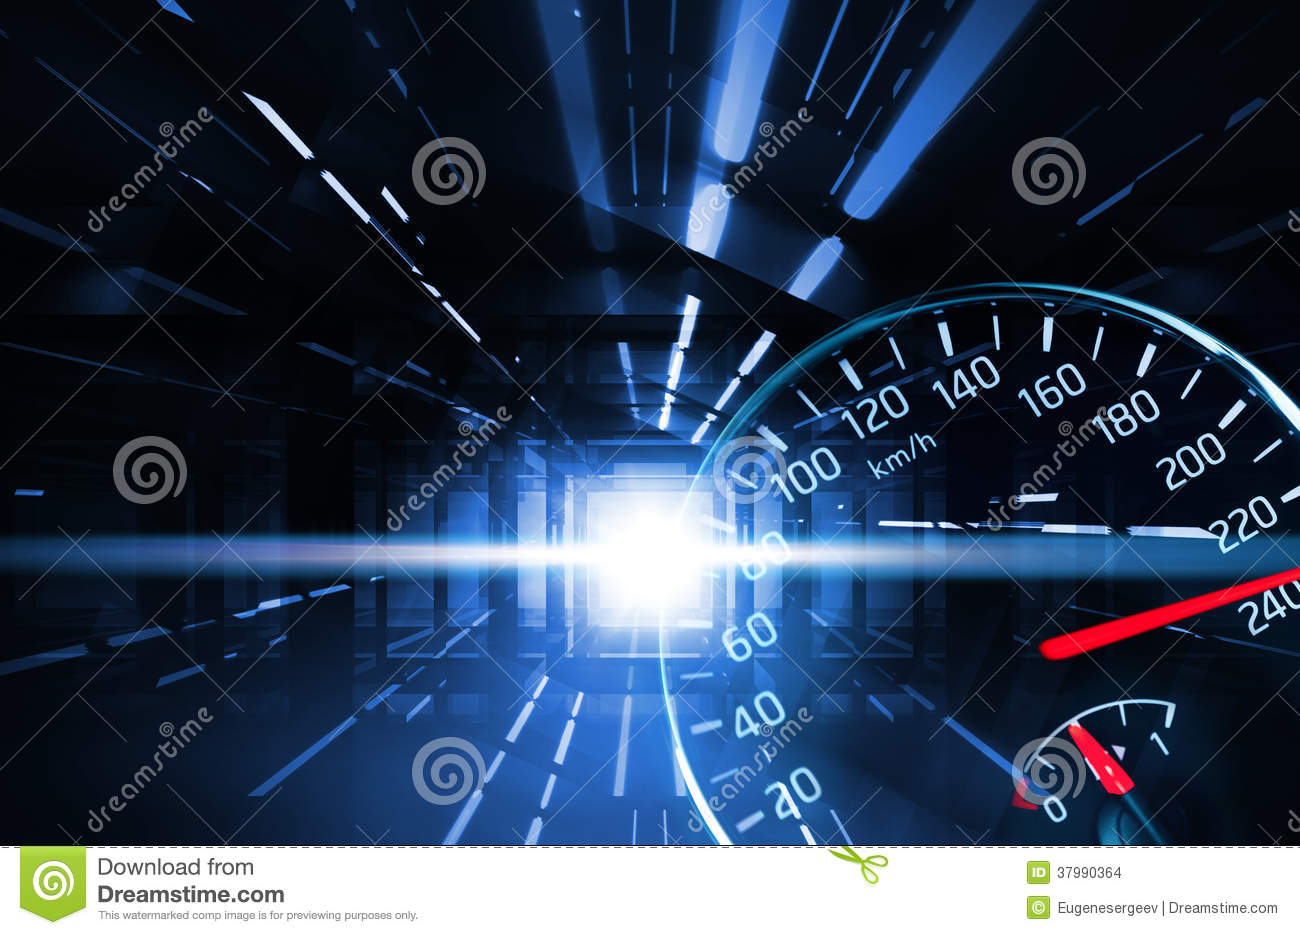 Racing Car Live Wallpaper Android Abstract Racing Illustration With Speedometer Stock